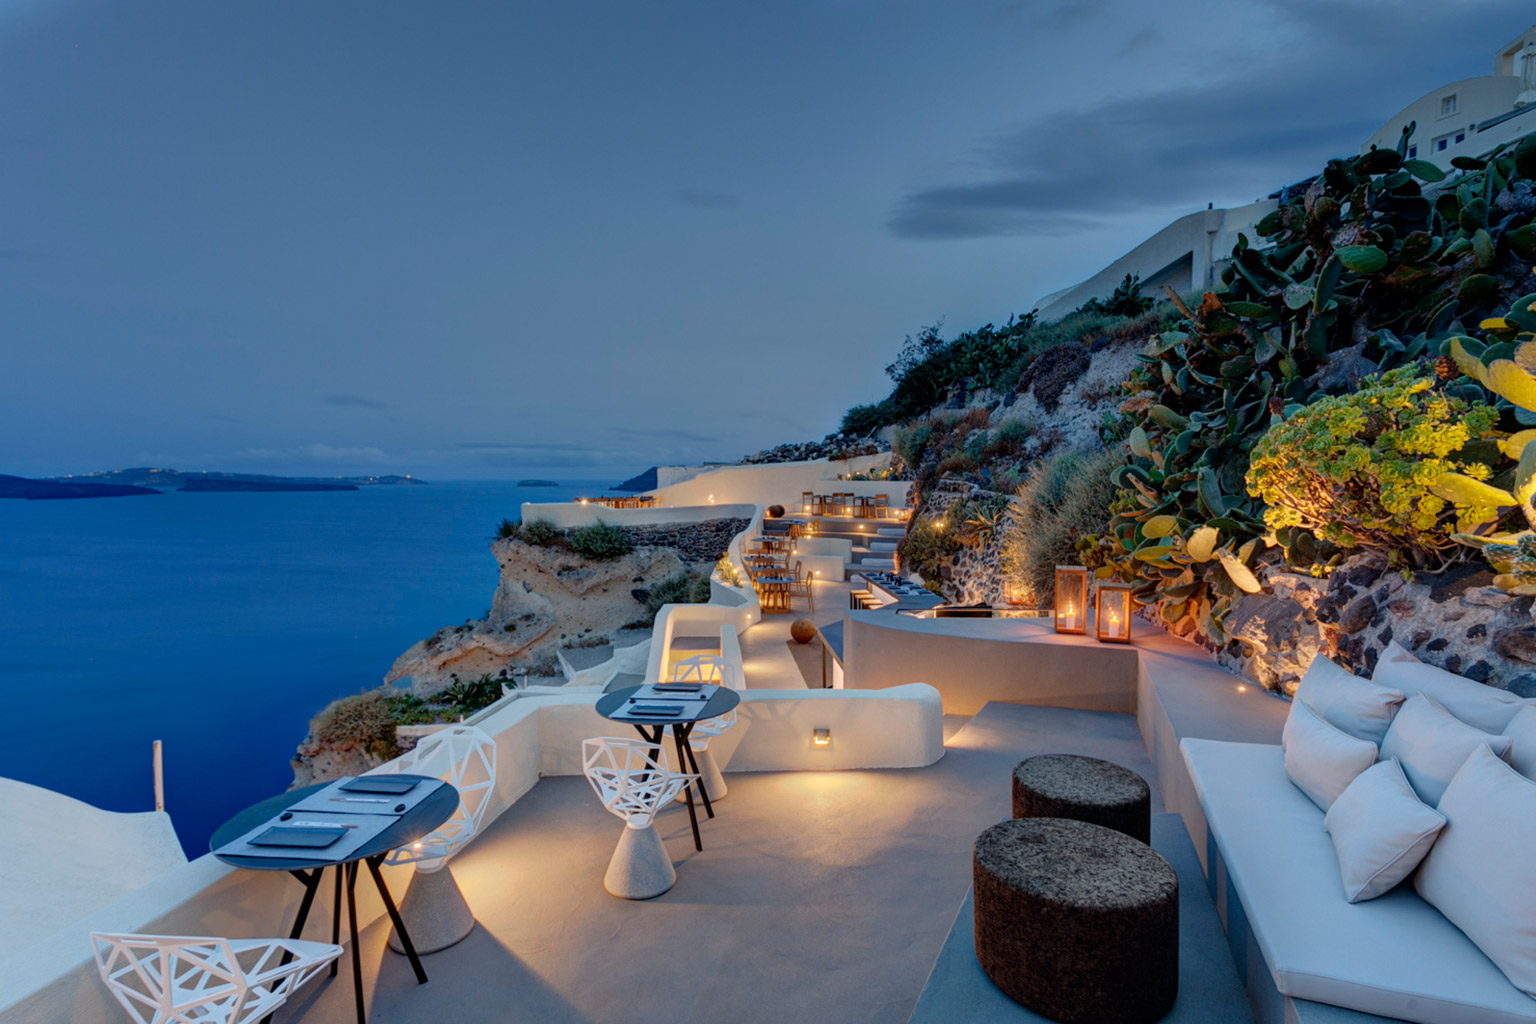 Mystique resort santorin luxushotels bei designreisen for Design hotels griechenland